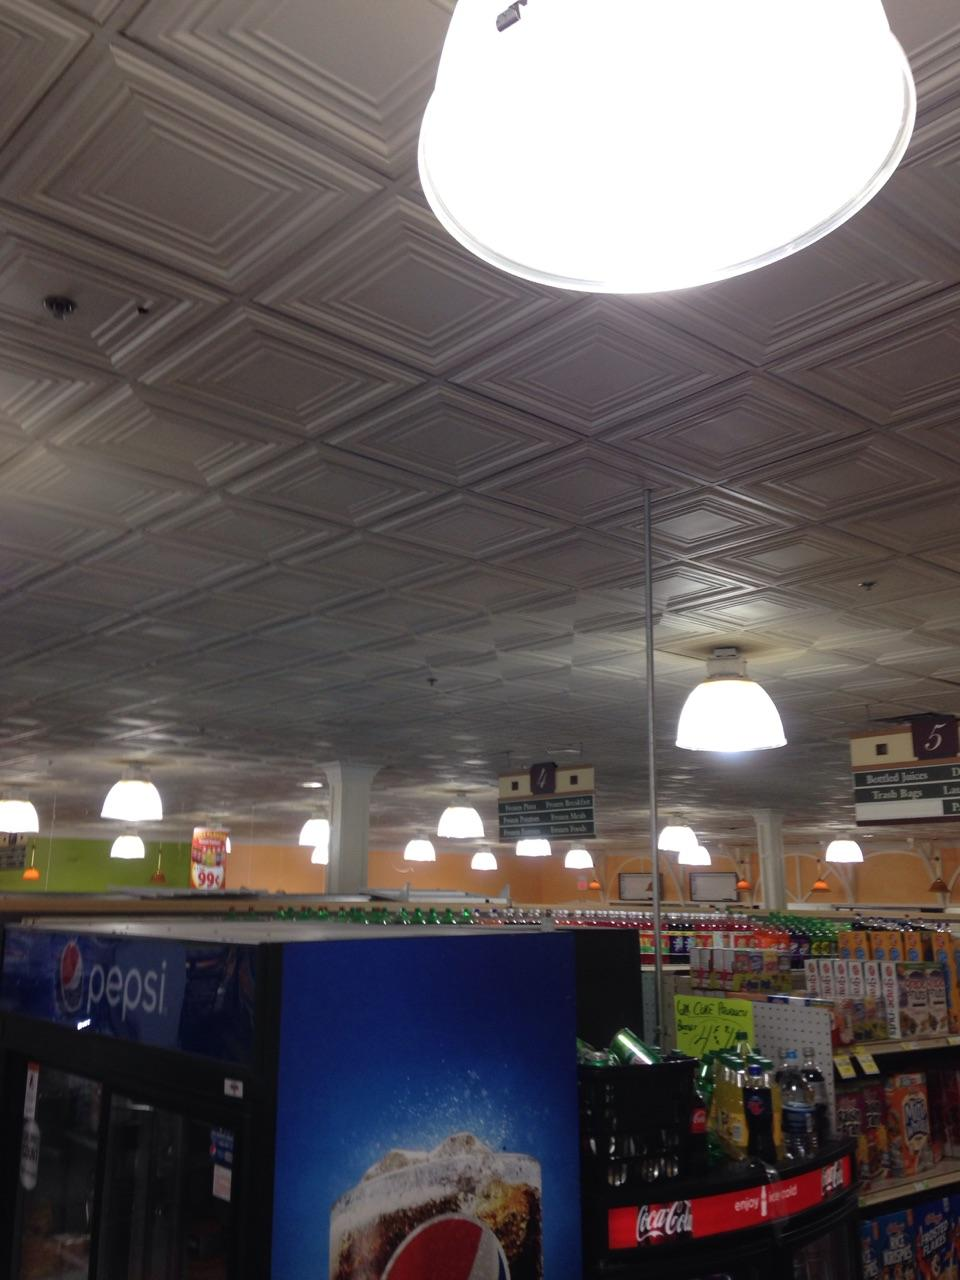 Pen Dutch Supermarket with brand new LEDRadiant LED pannels and tubes